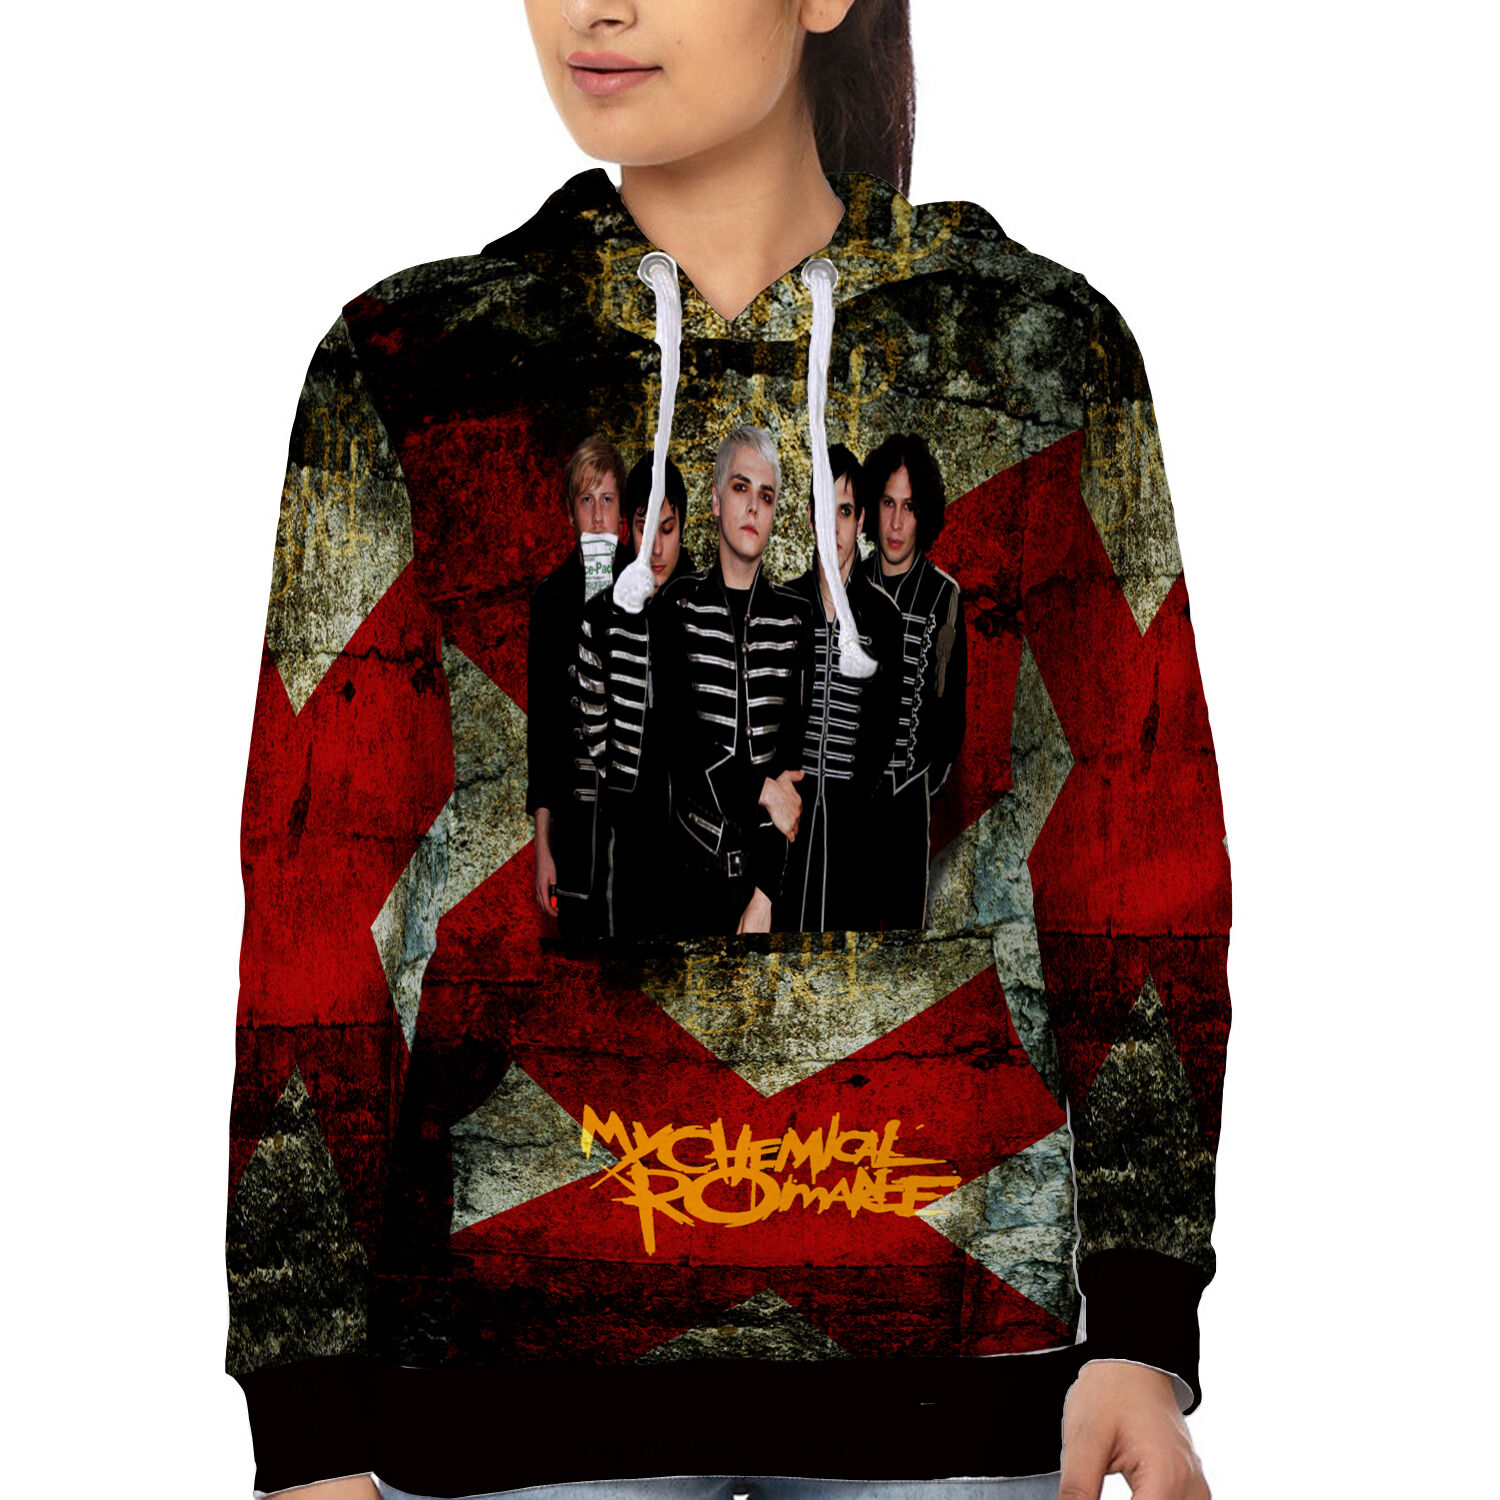 My Chemical Romance Womens Hoodie Sweatshirt